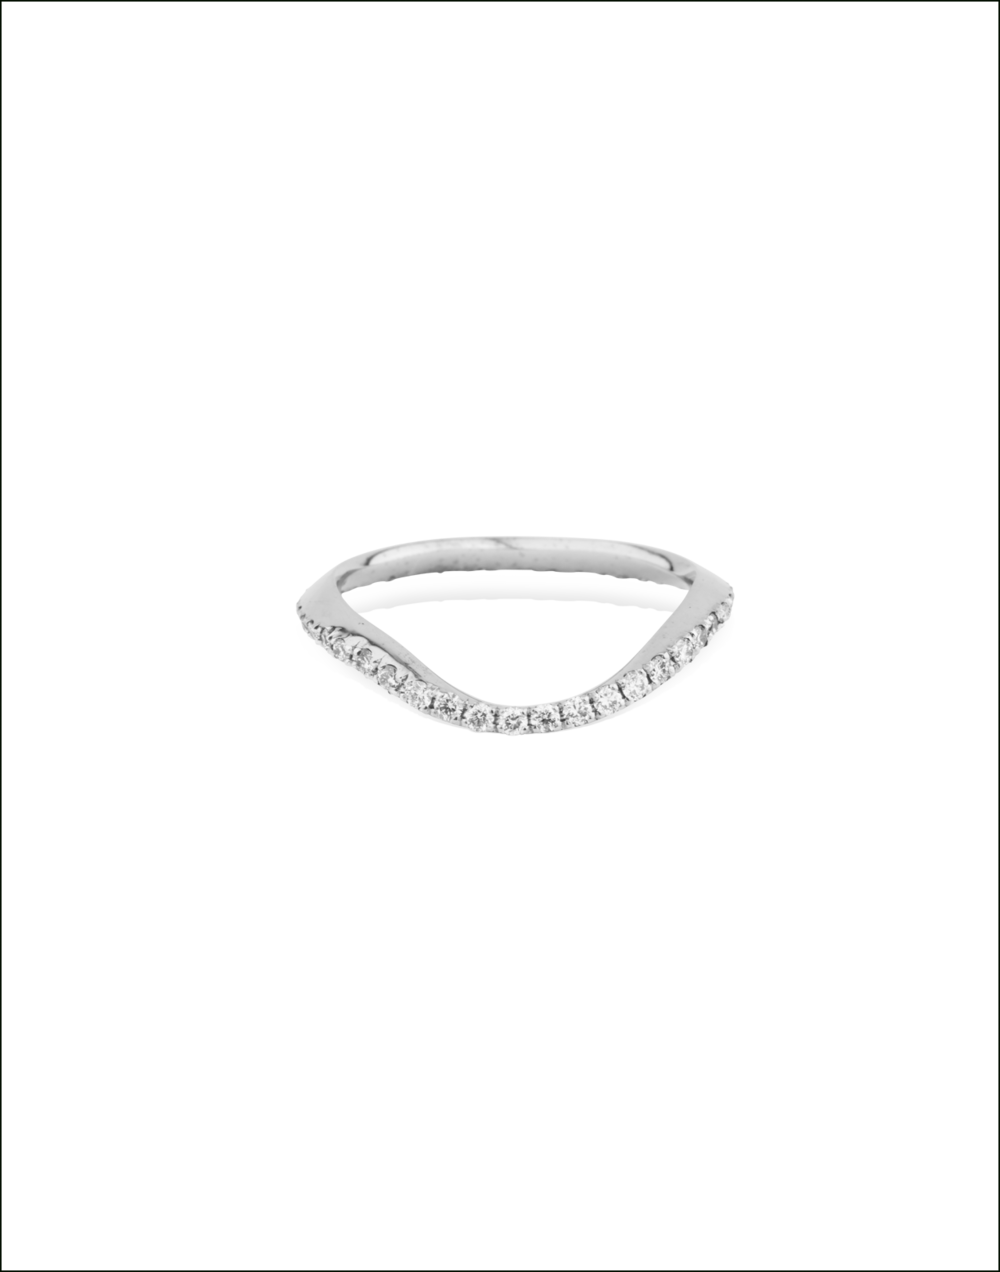 Completedworks-Wedding-Band-Wave-Gold-Ring-4-1.png